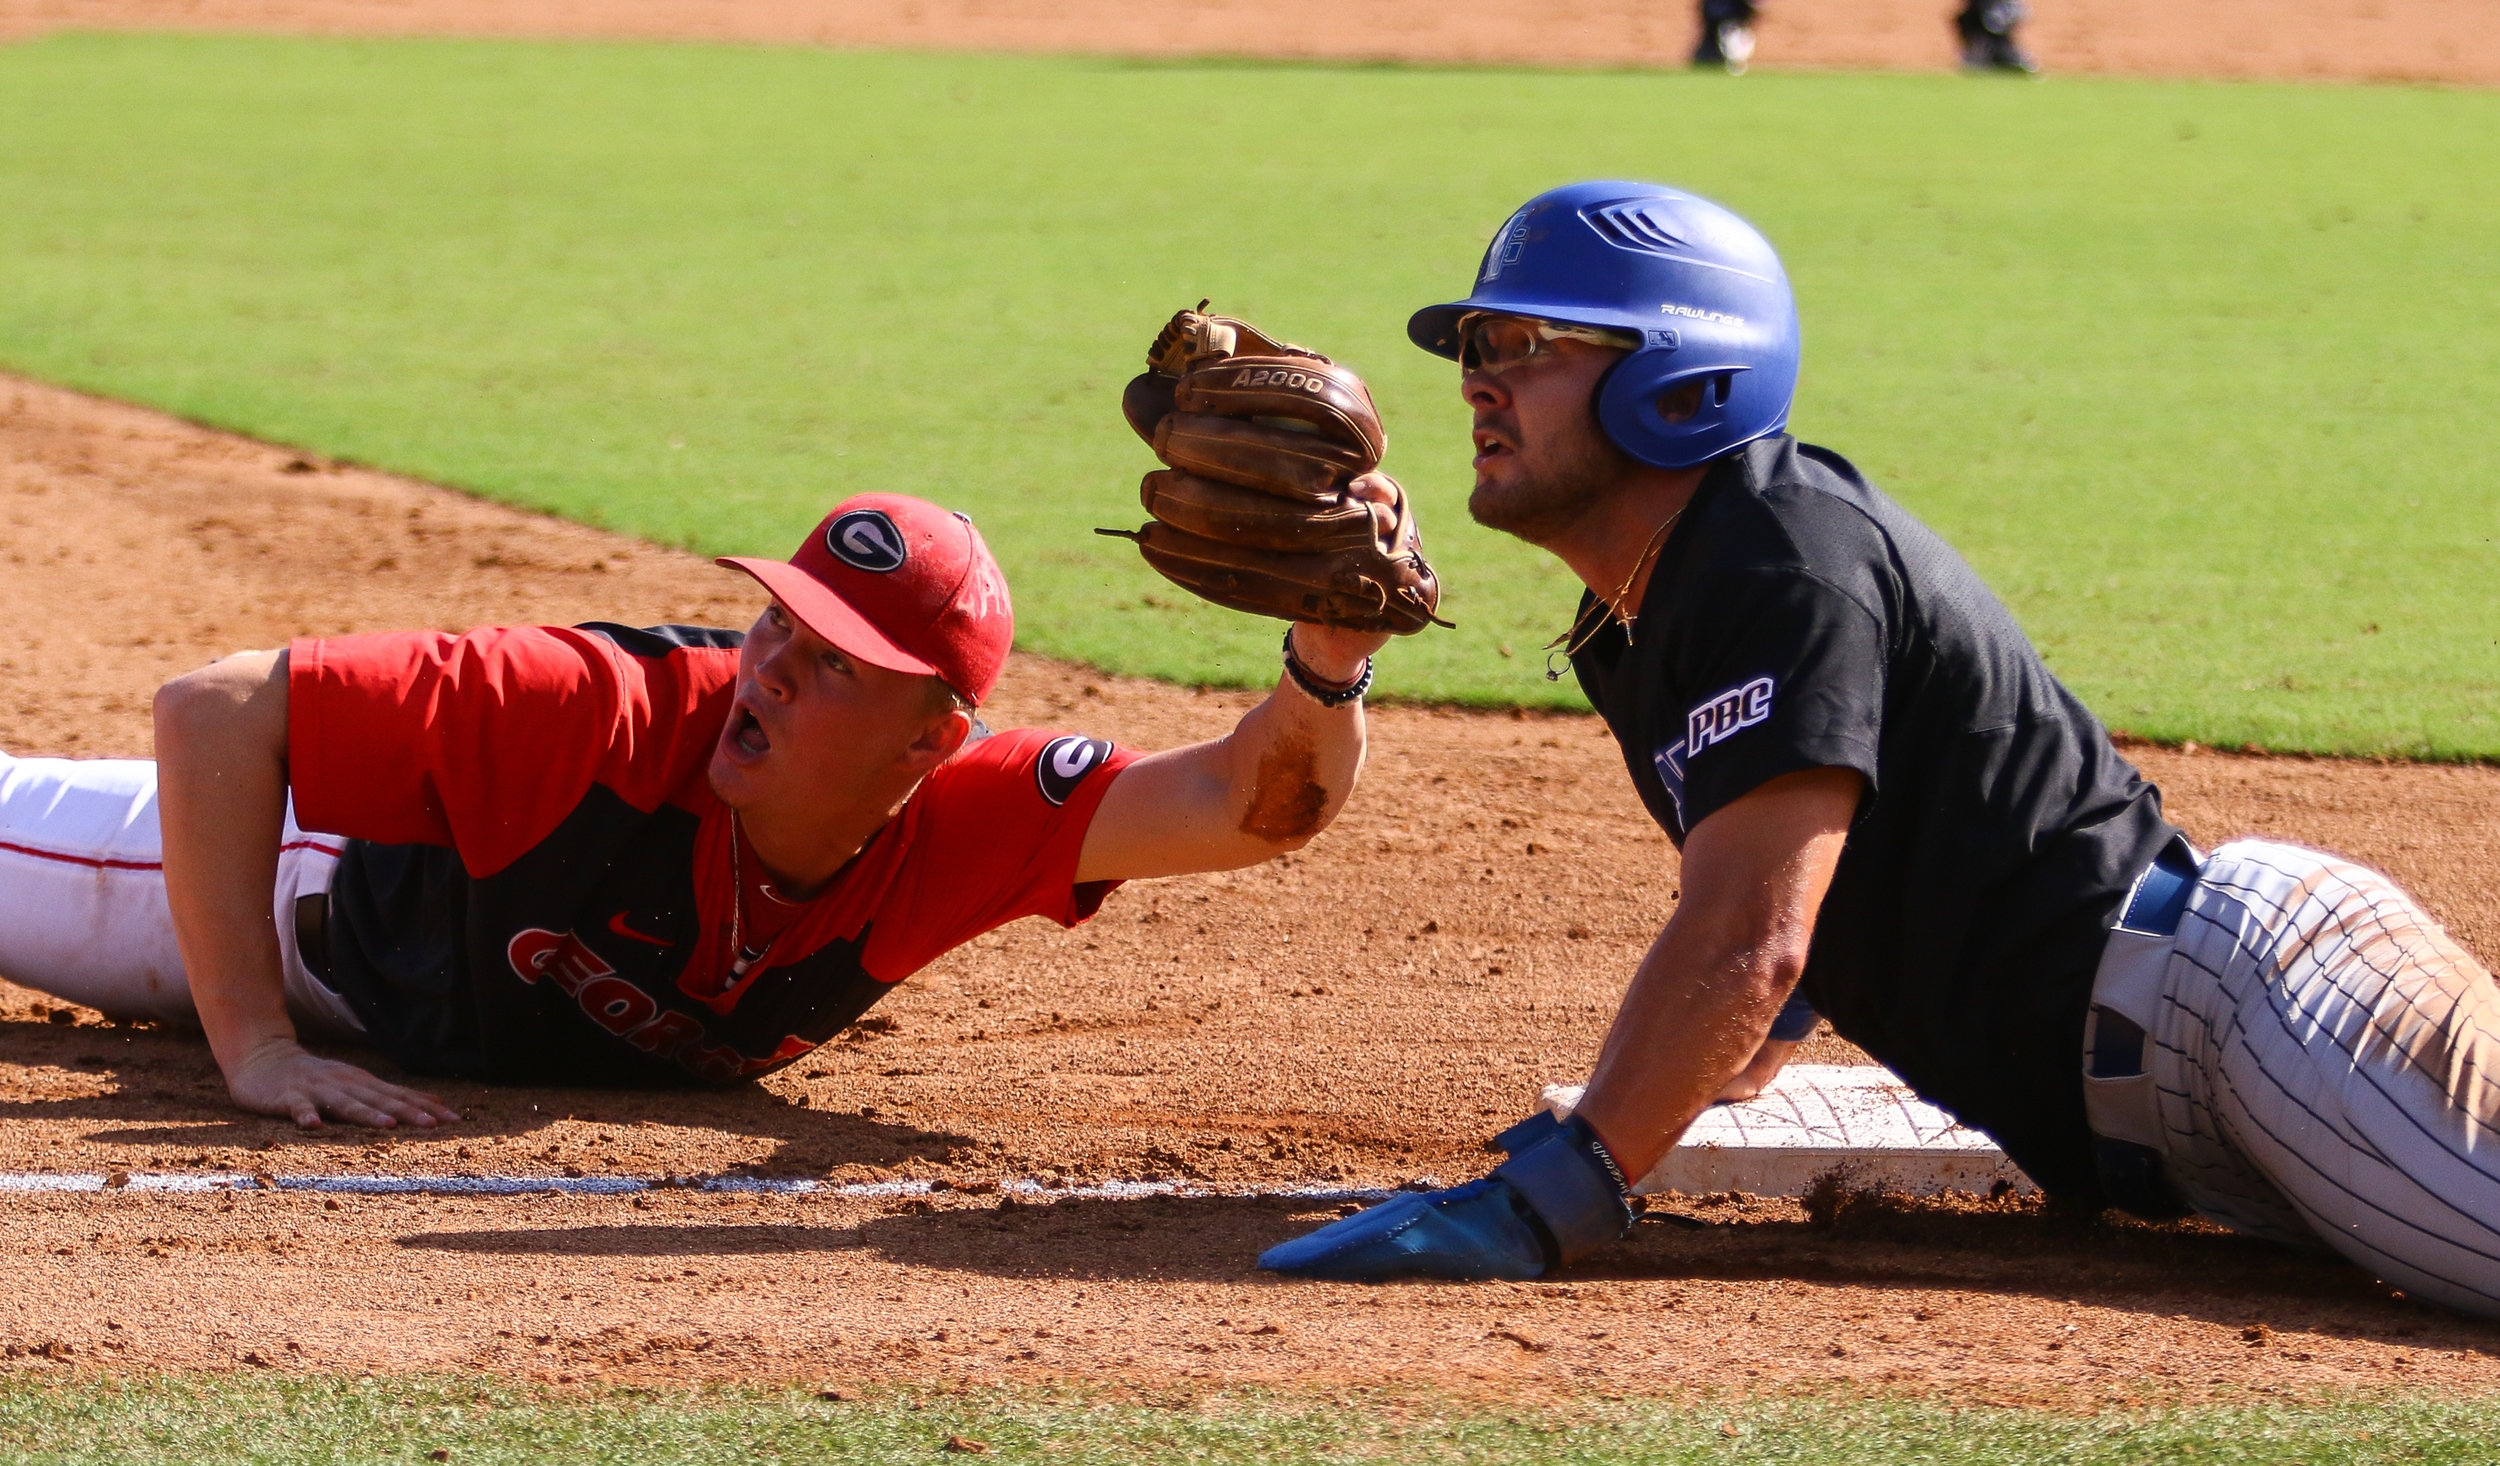 Georgia third baseman Aaron Schunk (22) looks to the umpire to confirm his tag during an exhibition game between the University of Georgia Bulldogs and the University of North Georgia Night Hawks at Foley Field on Sunday, Sept. 30, 2018.